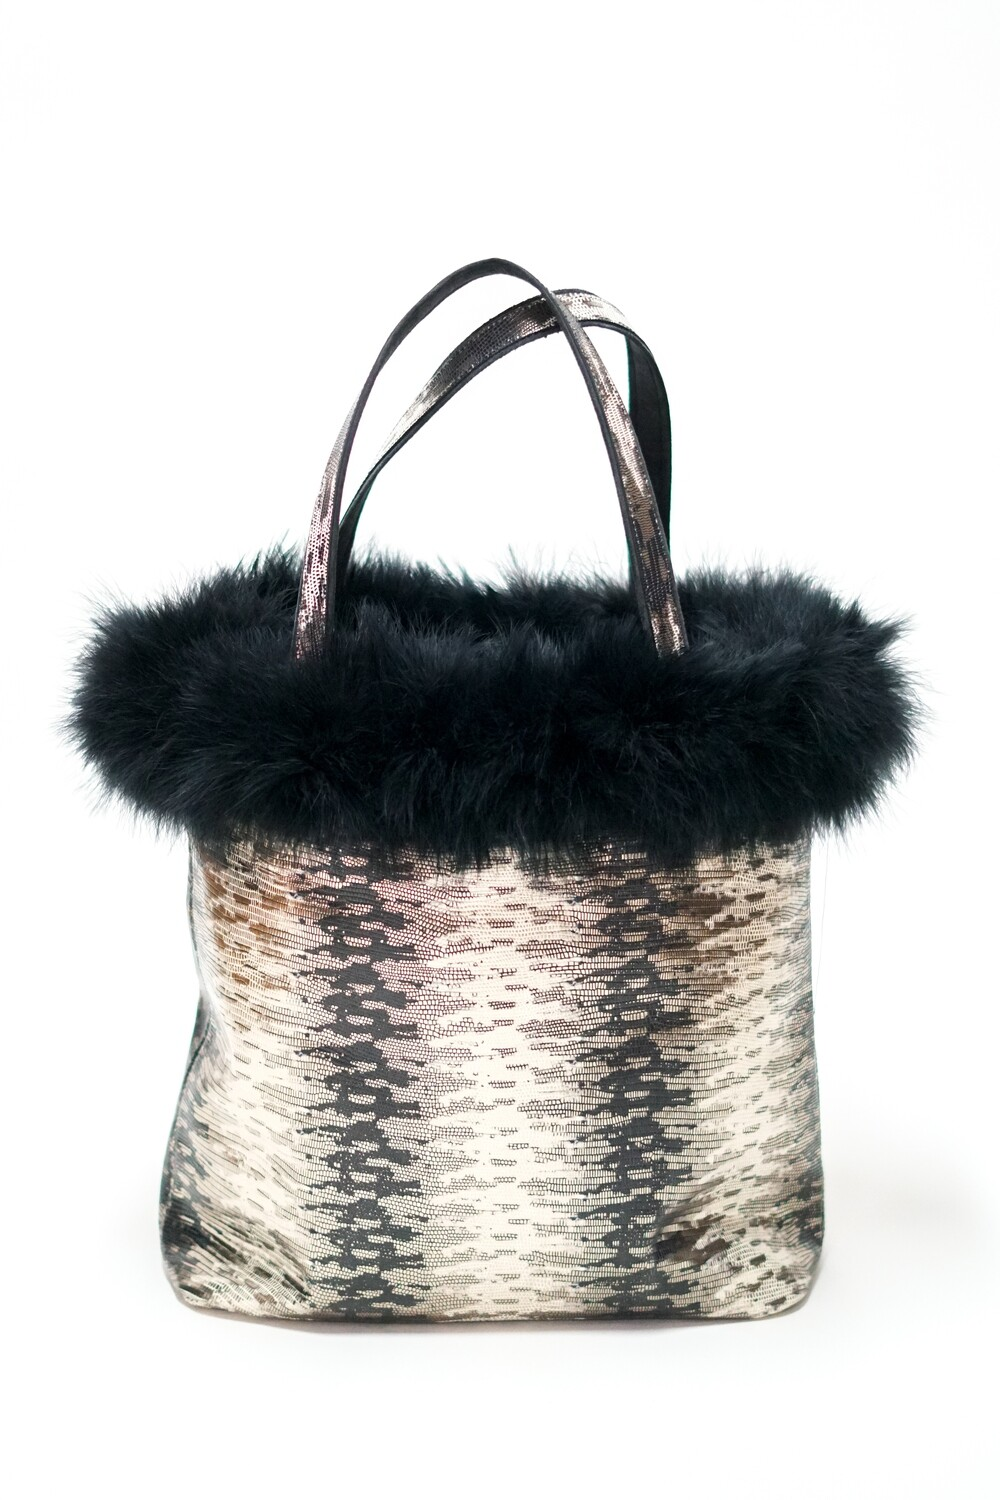 Ostrich Feathers Printed Snakeskin on Cowhide - Tote